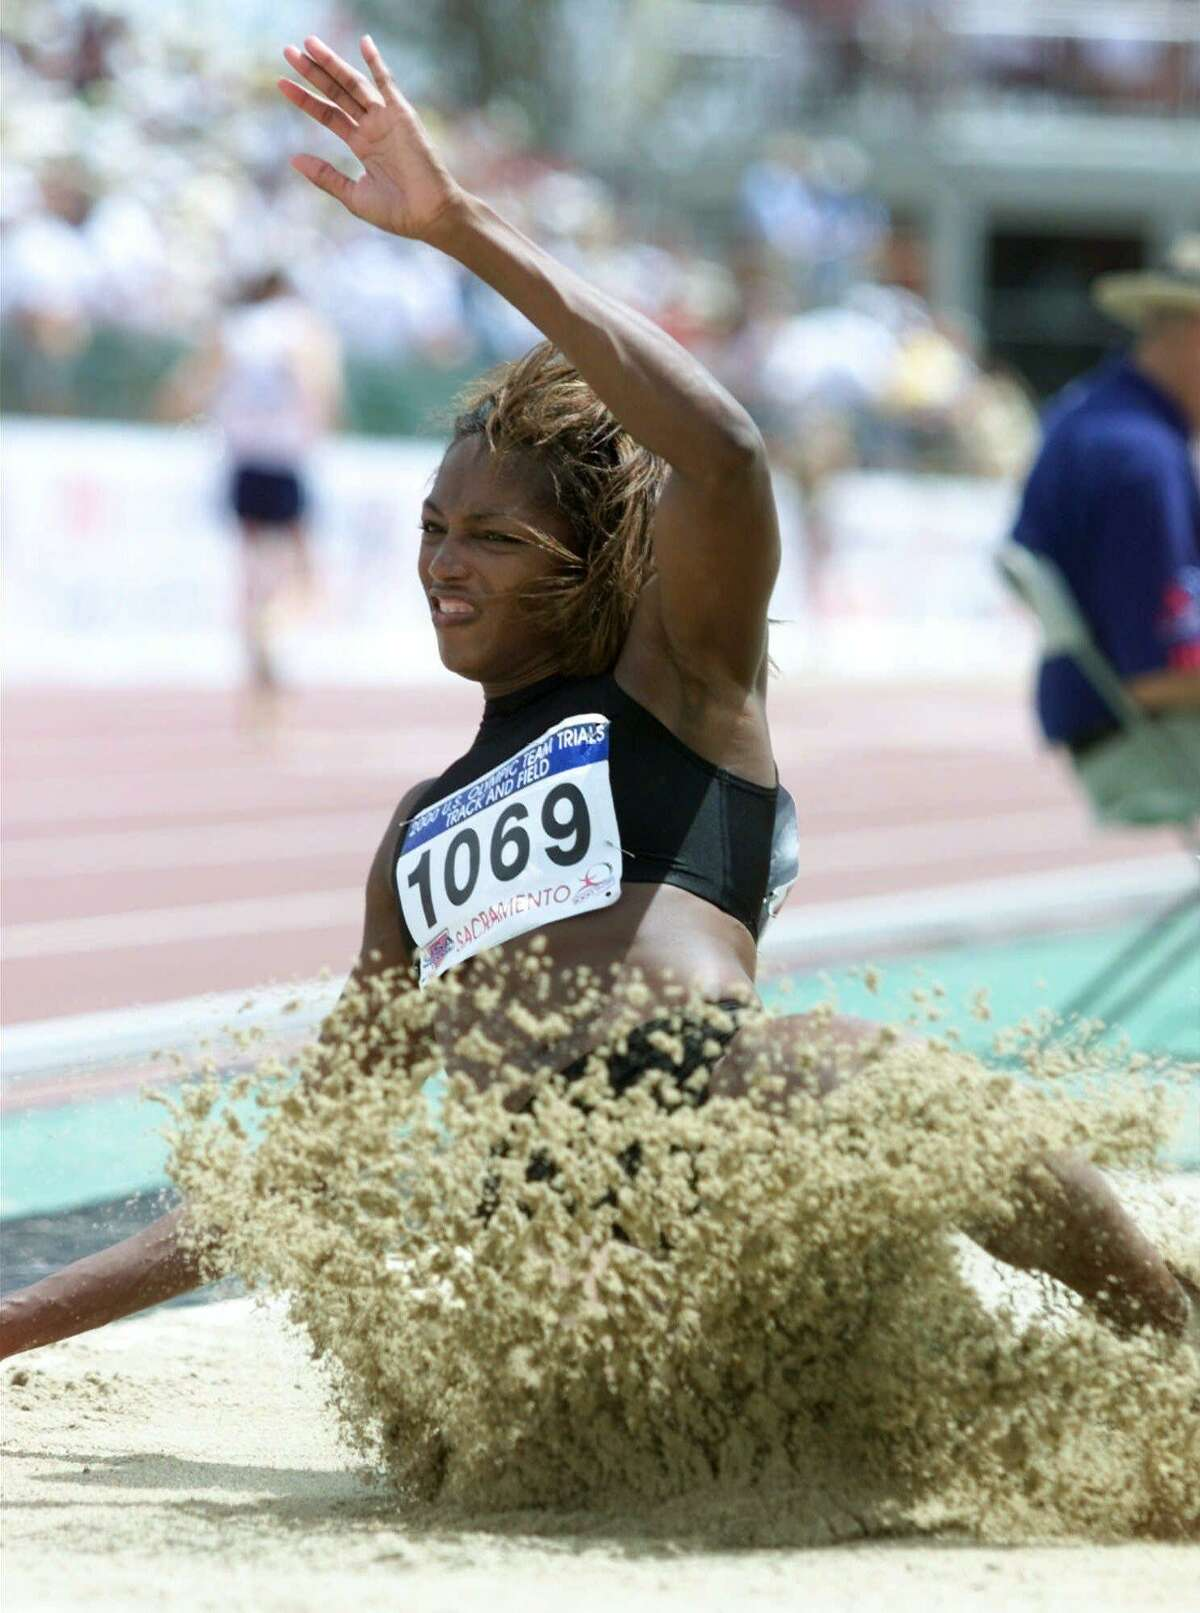 Dawn Burrell lands in the sand during the women's long jump final at the U.S. Olympic Track & Field Trials in Sacramento, Calif., Sunday, July 16, 2000. Burrell placed second in the event.